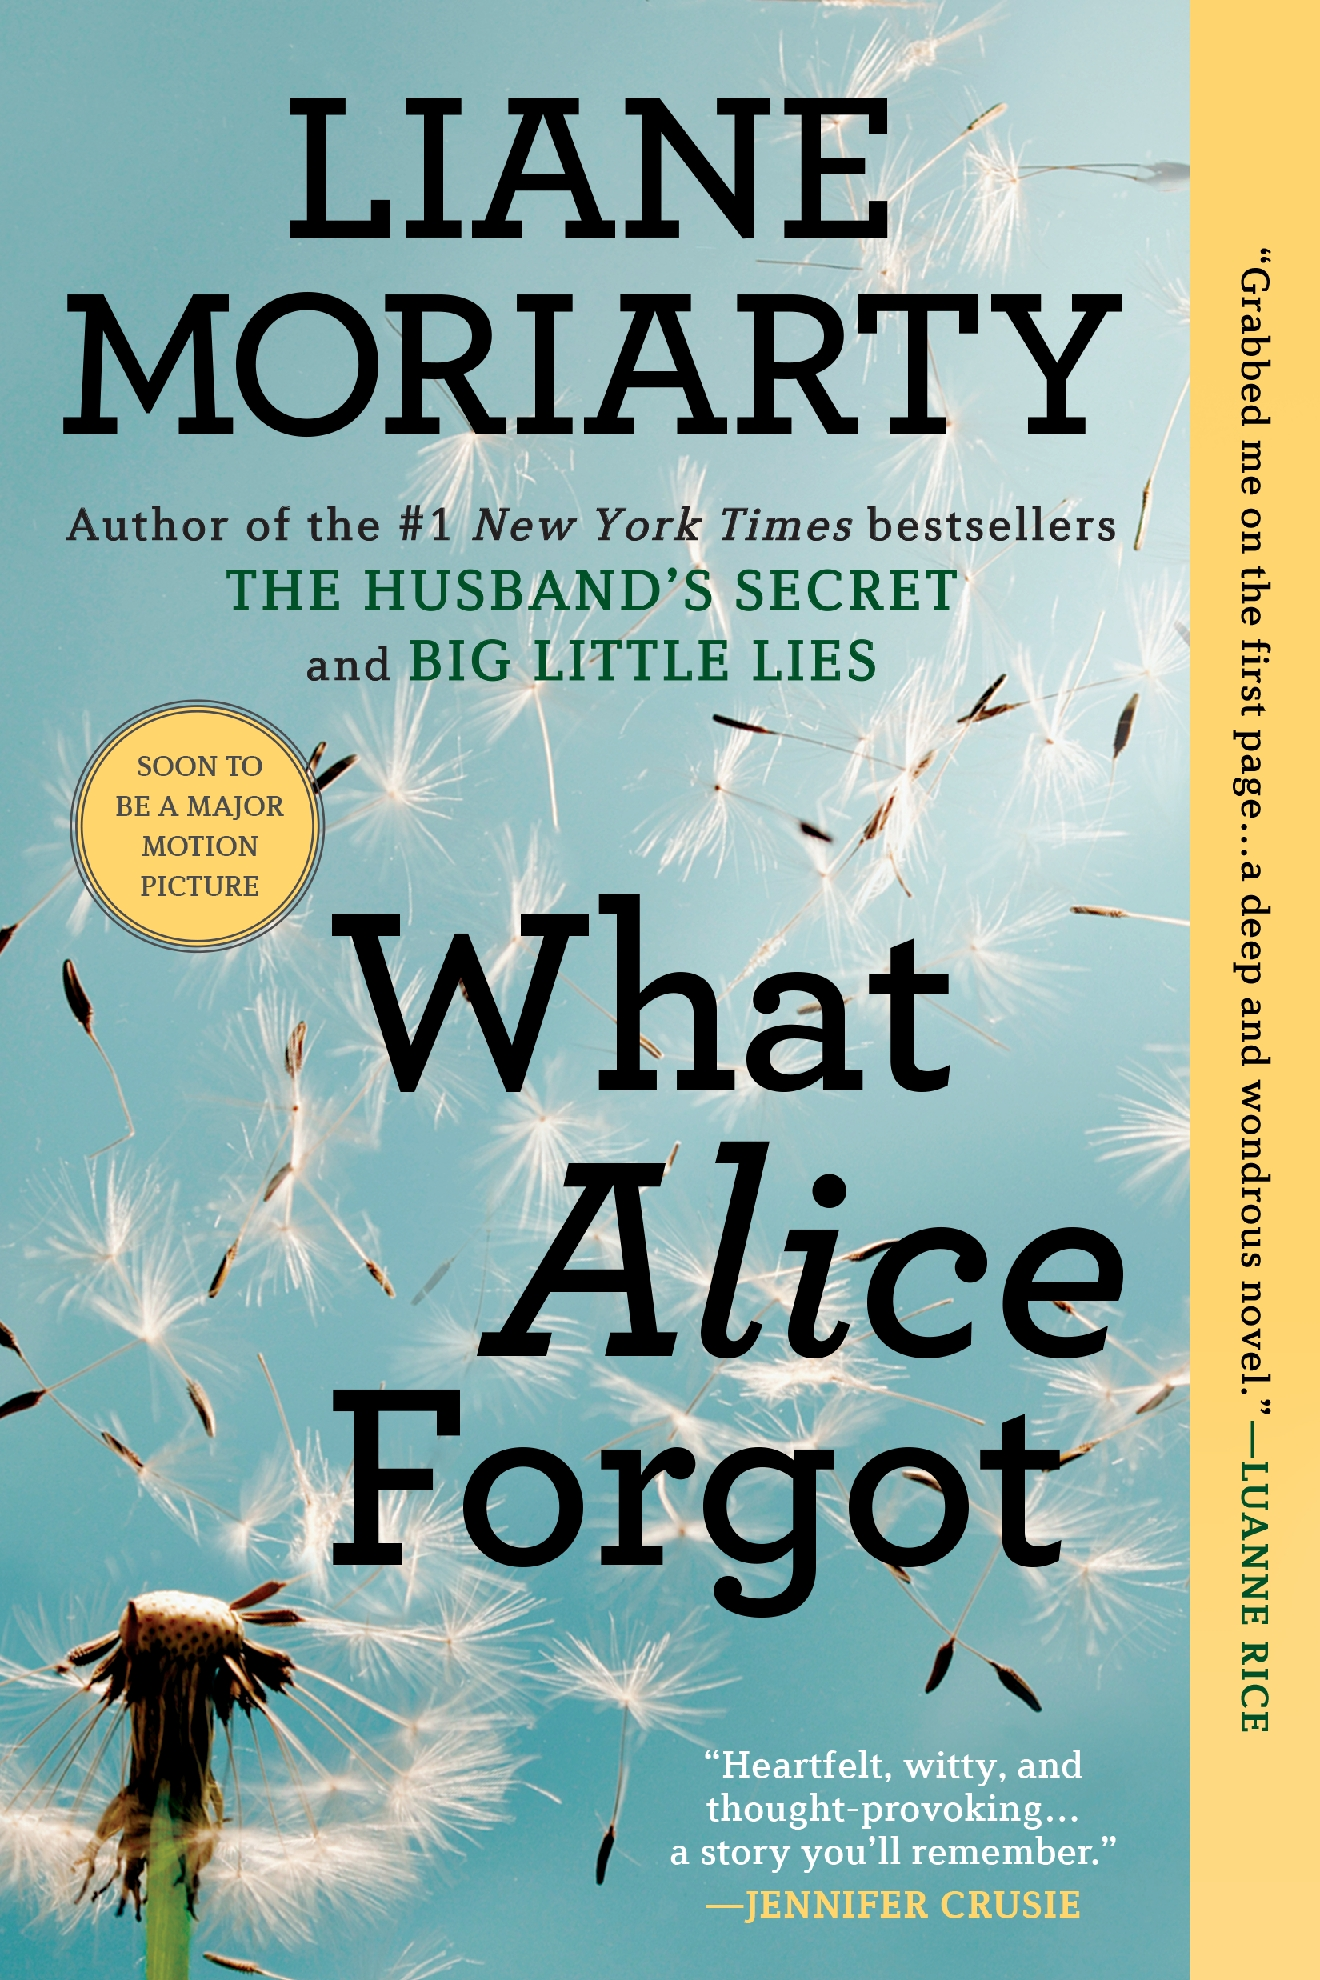 What Alice Forgot, by Liane Moriarty (Image: Courtesy Berkley Books)